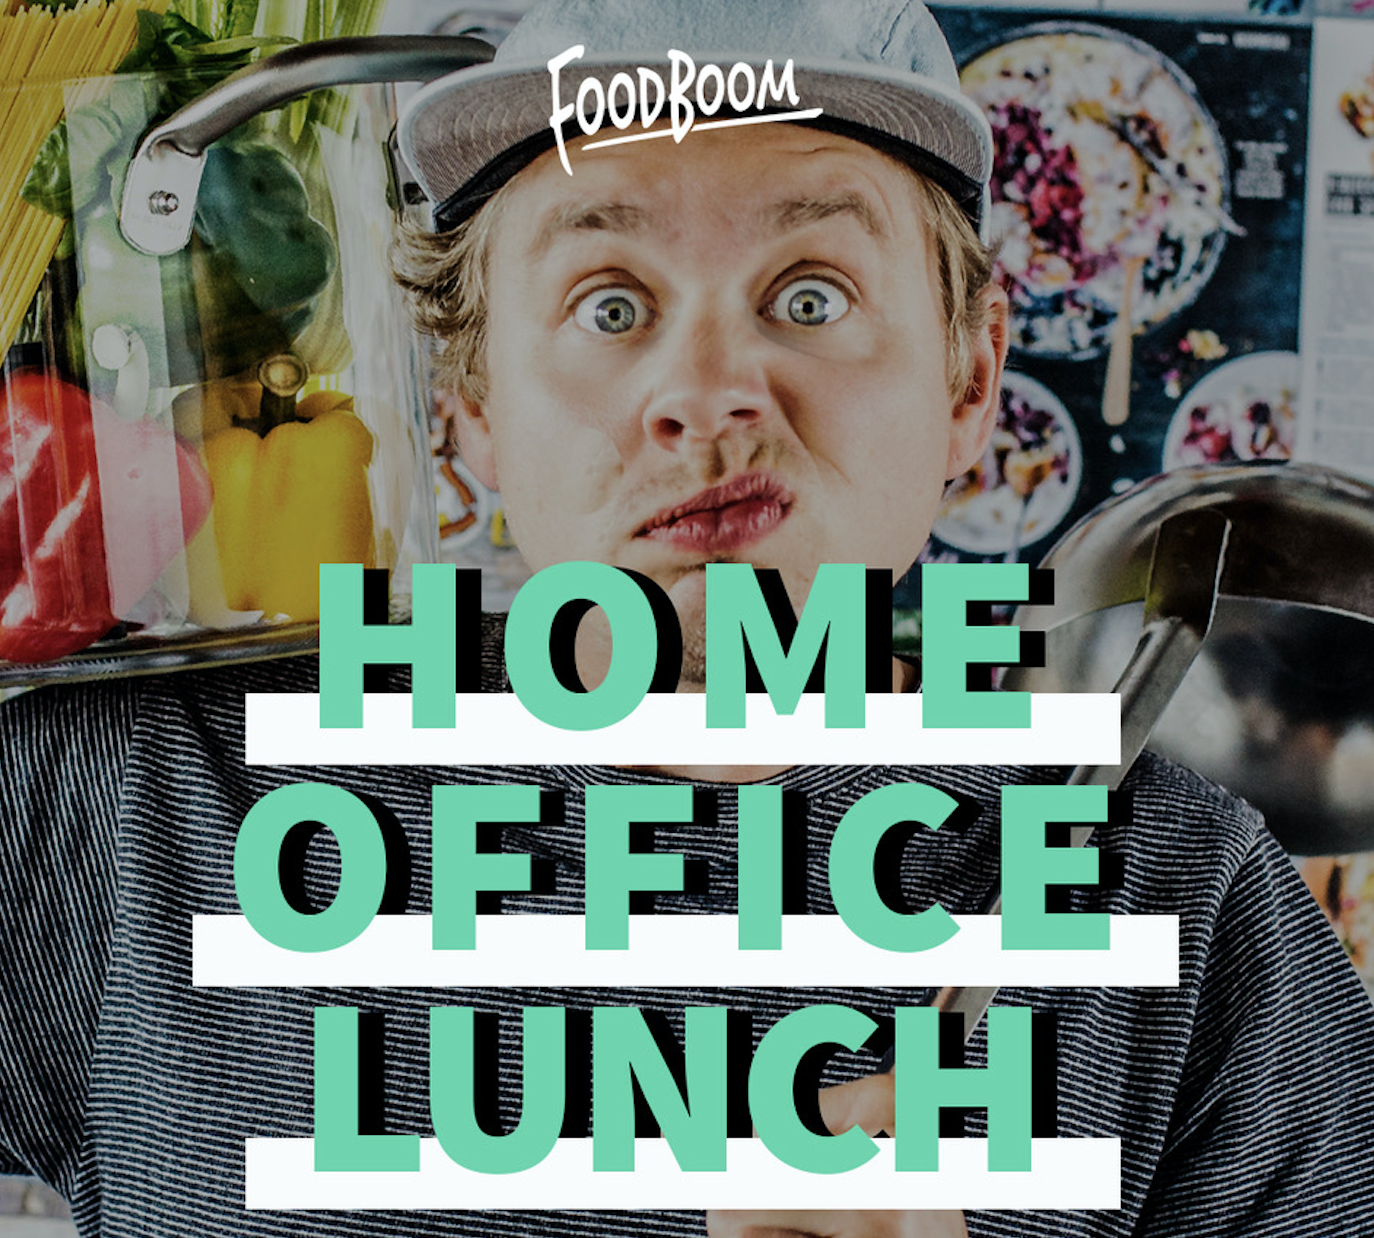 Mache mit beim Homeoffice-Lunch & koche mit FOODBOOM.